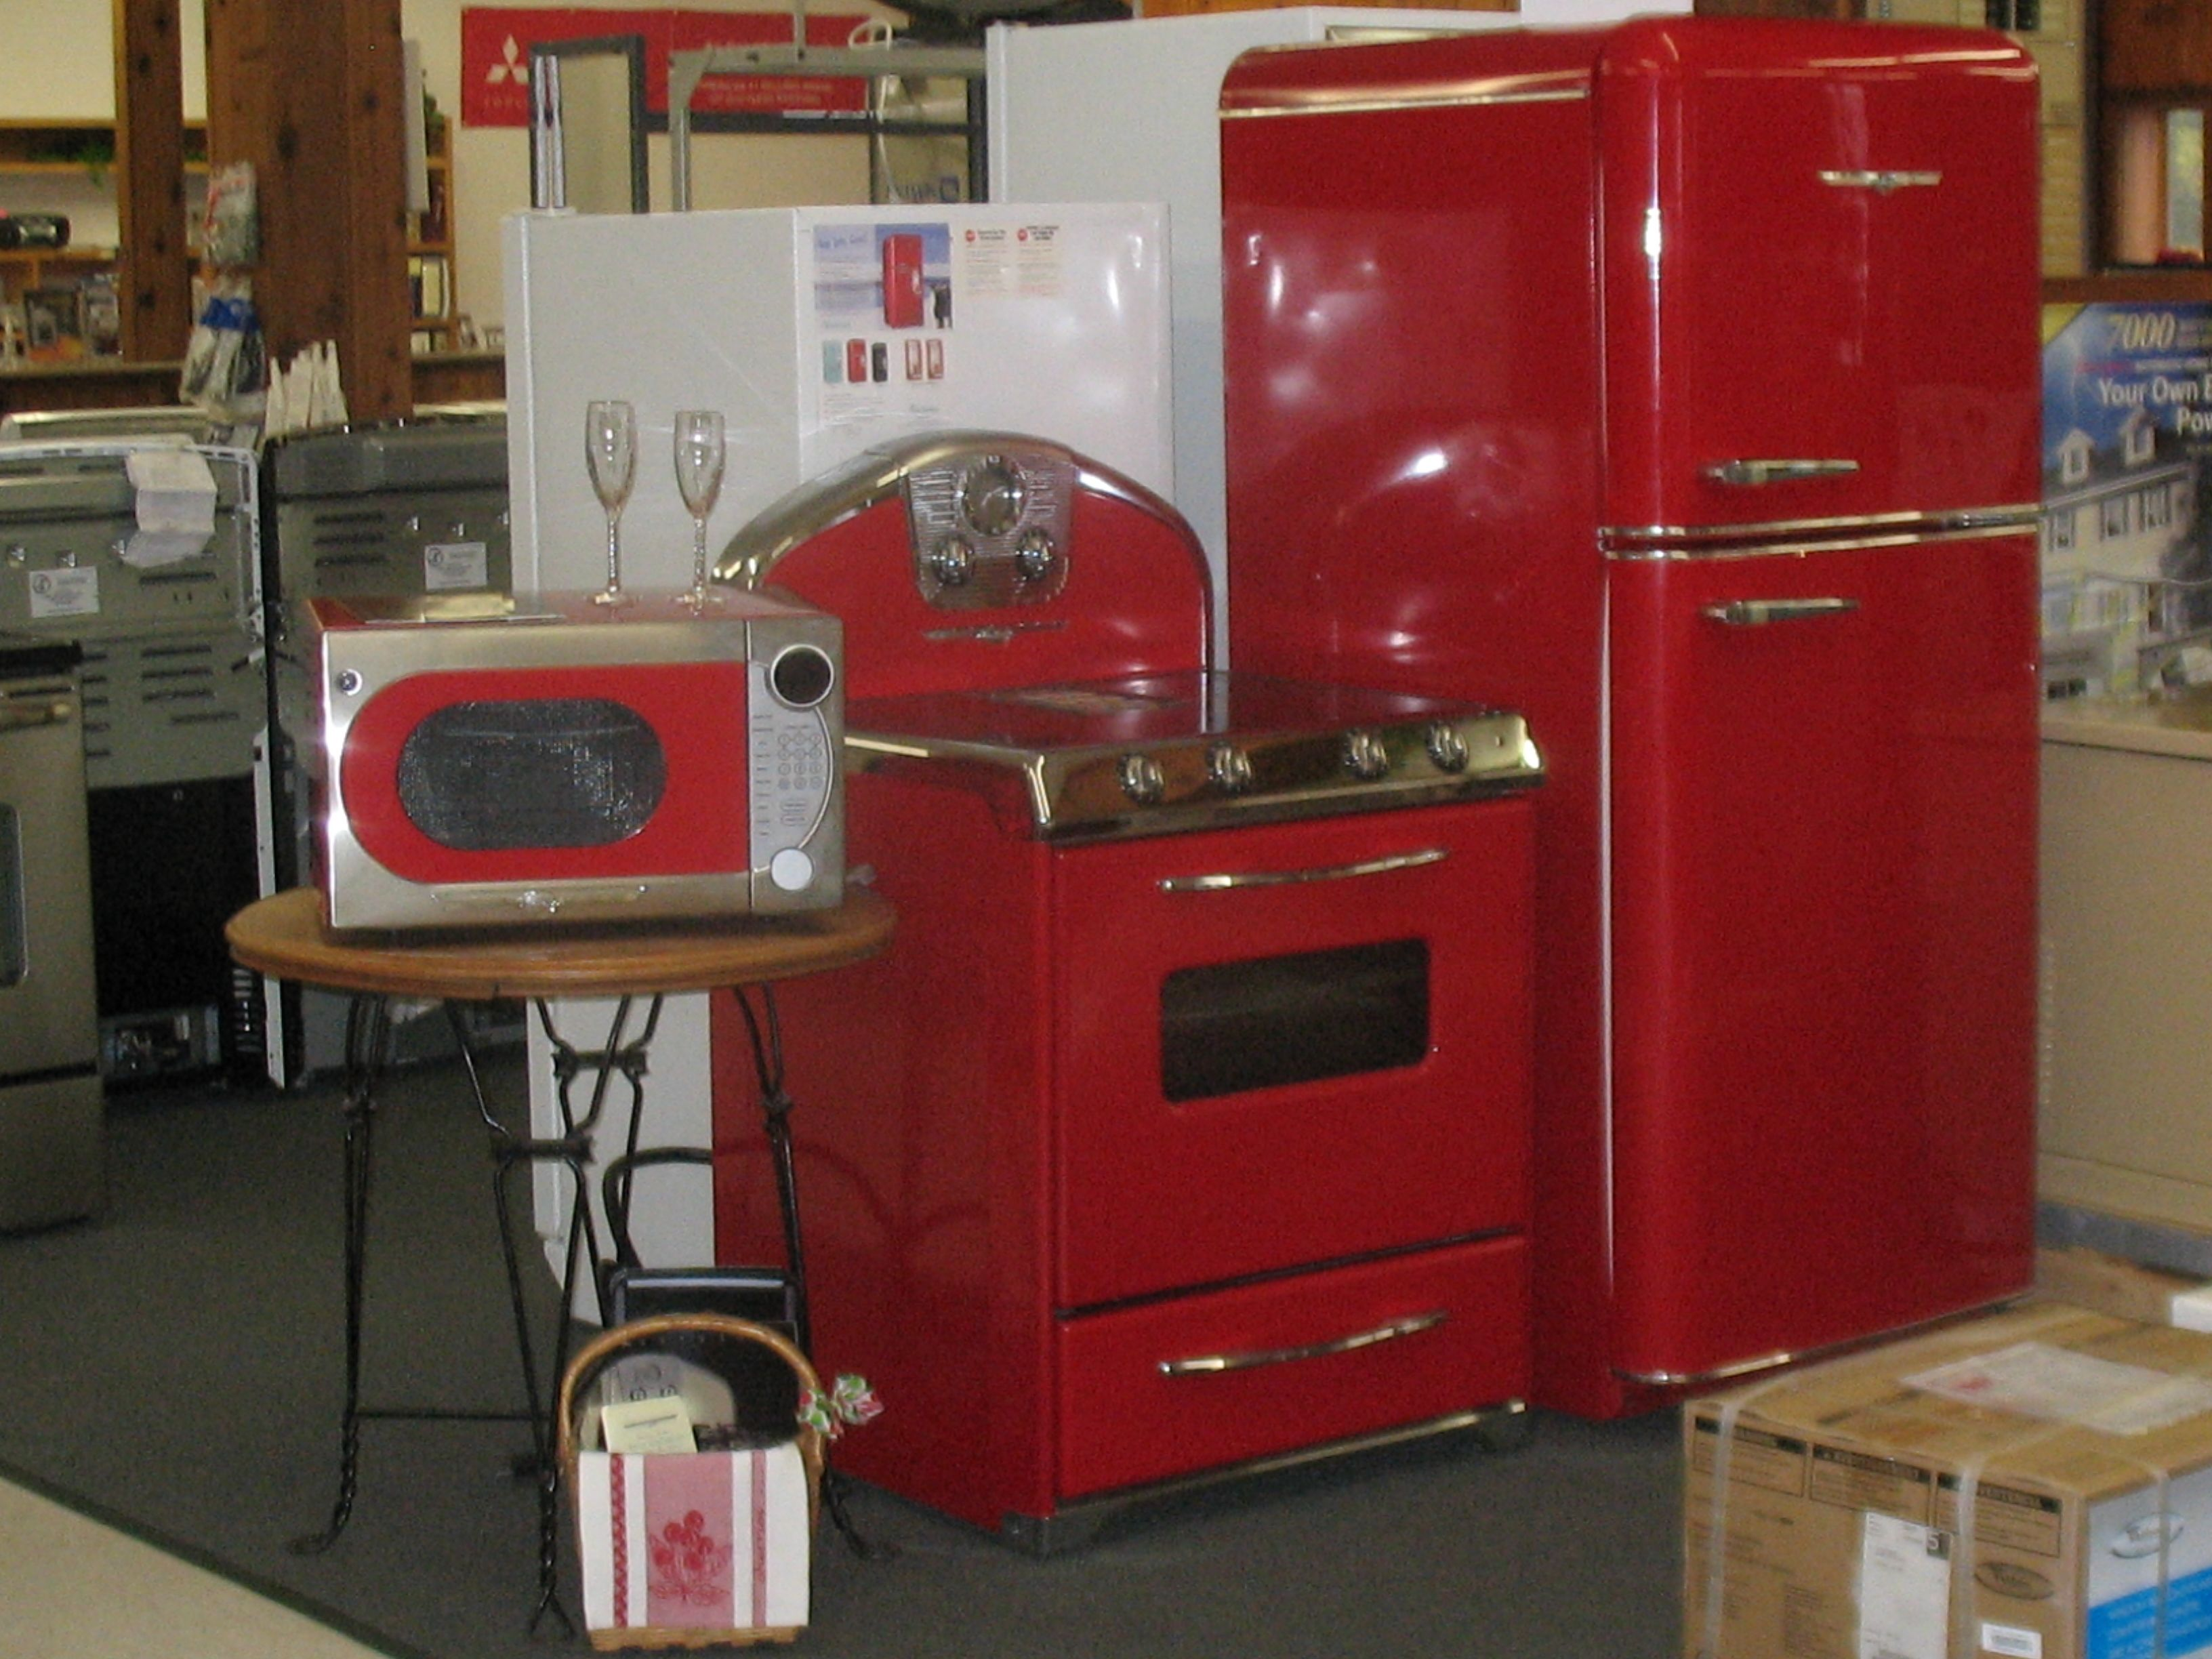 Reproduction Kitchen Appliances Retro 1950s Styled Kitchen Appliances With All The Modern